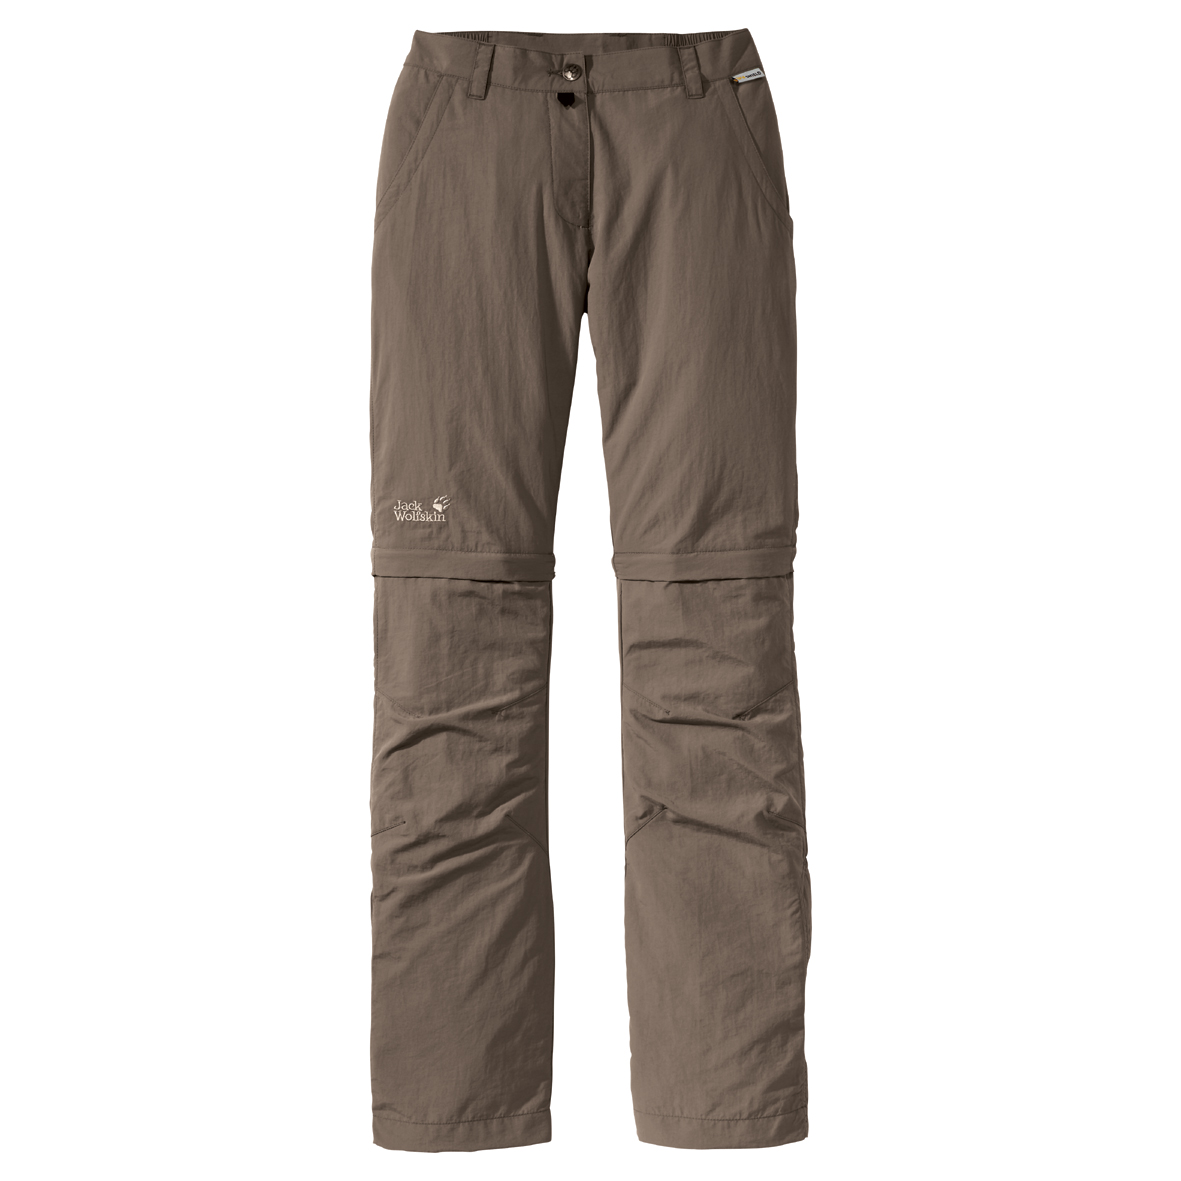 JACK WOLFSKIN WOMEN CANYON ZIP OFF PANTS SILVER MINK